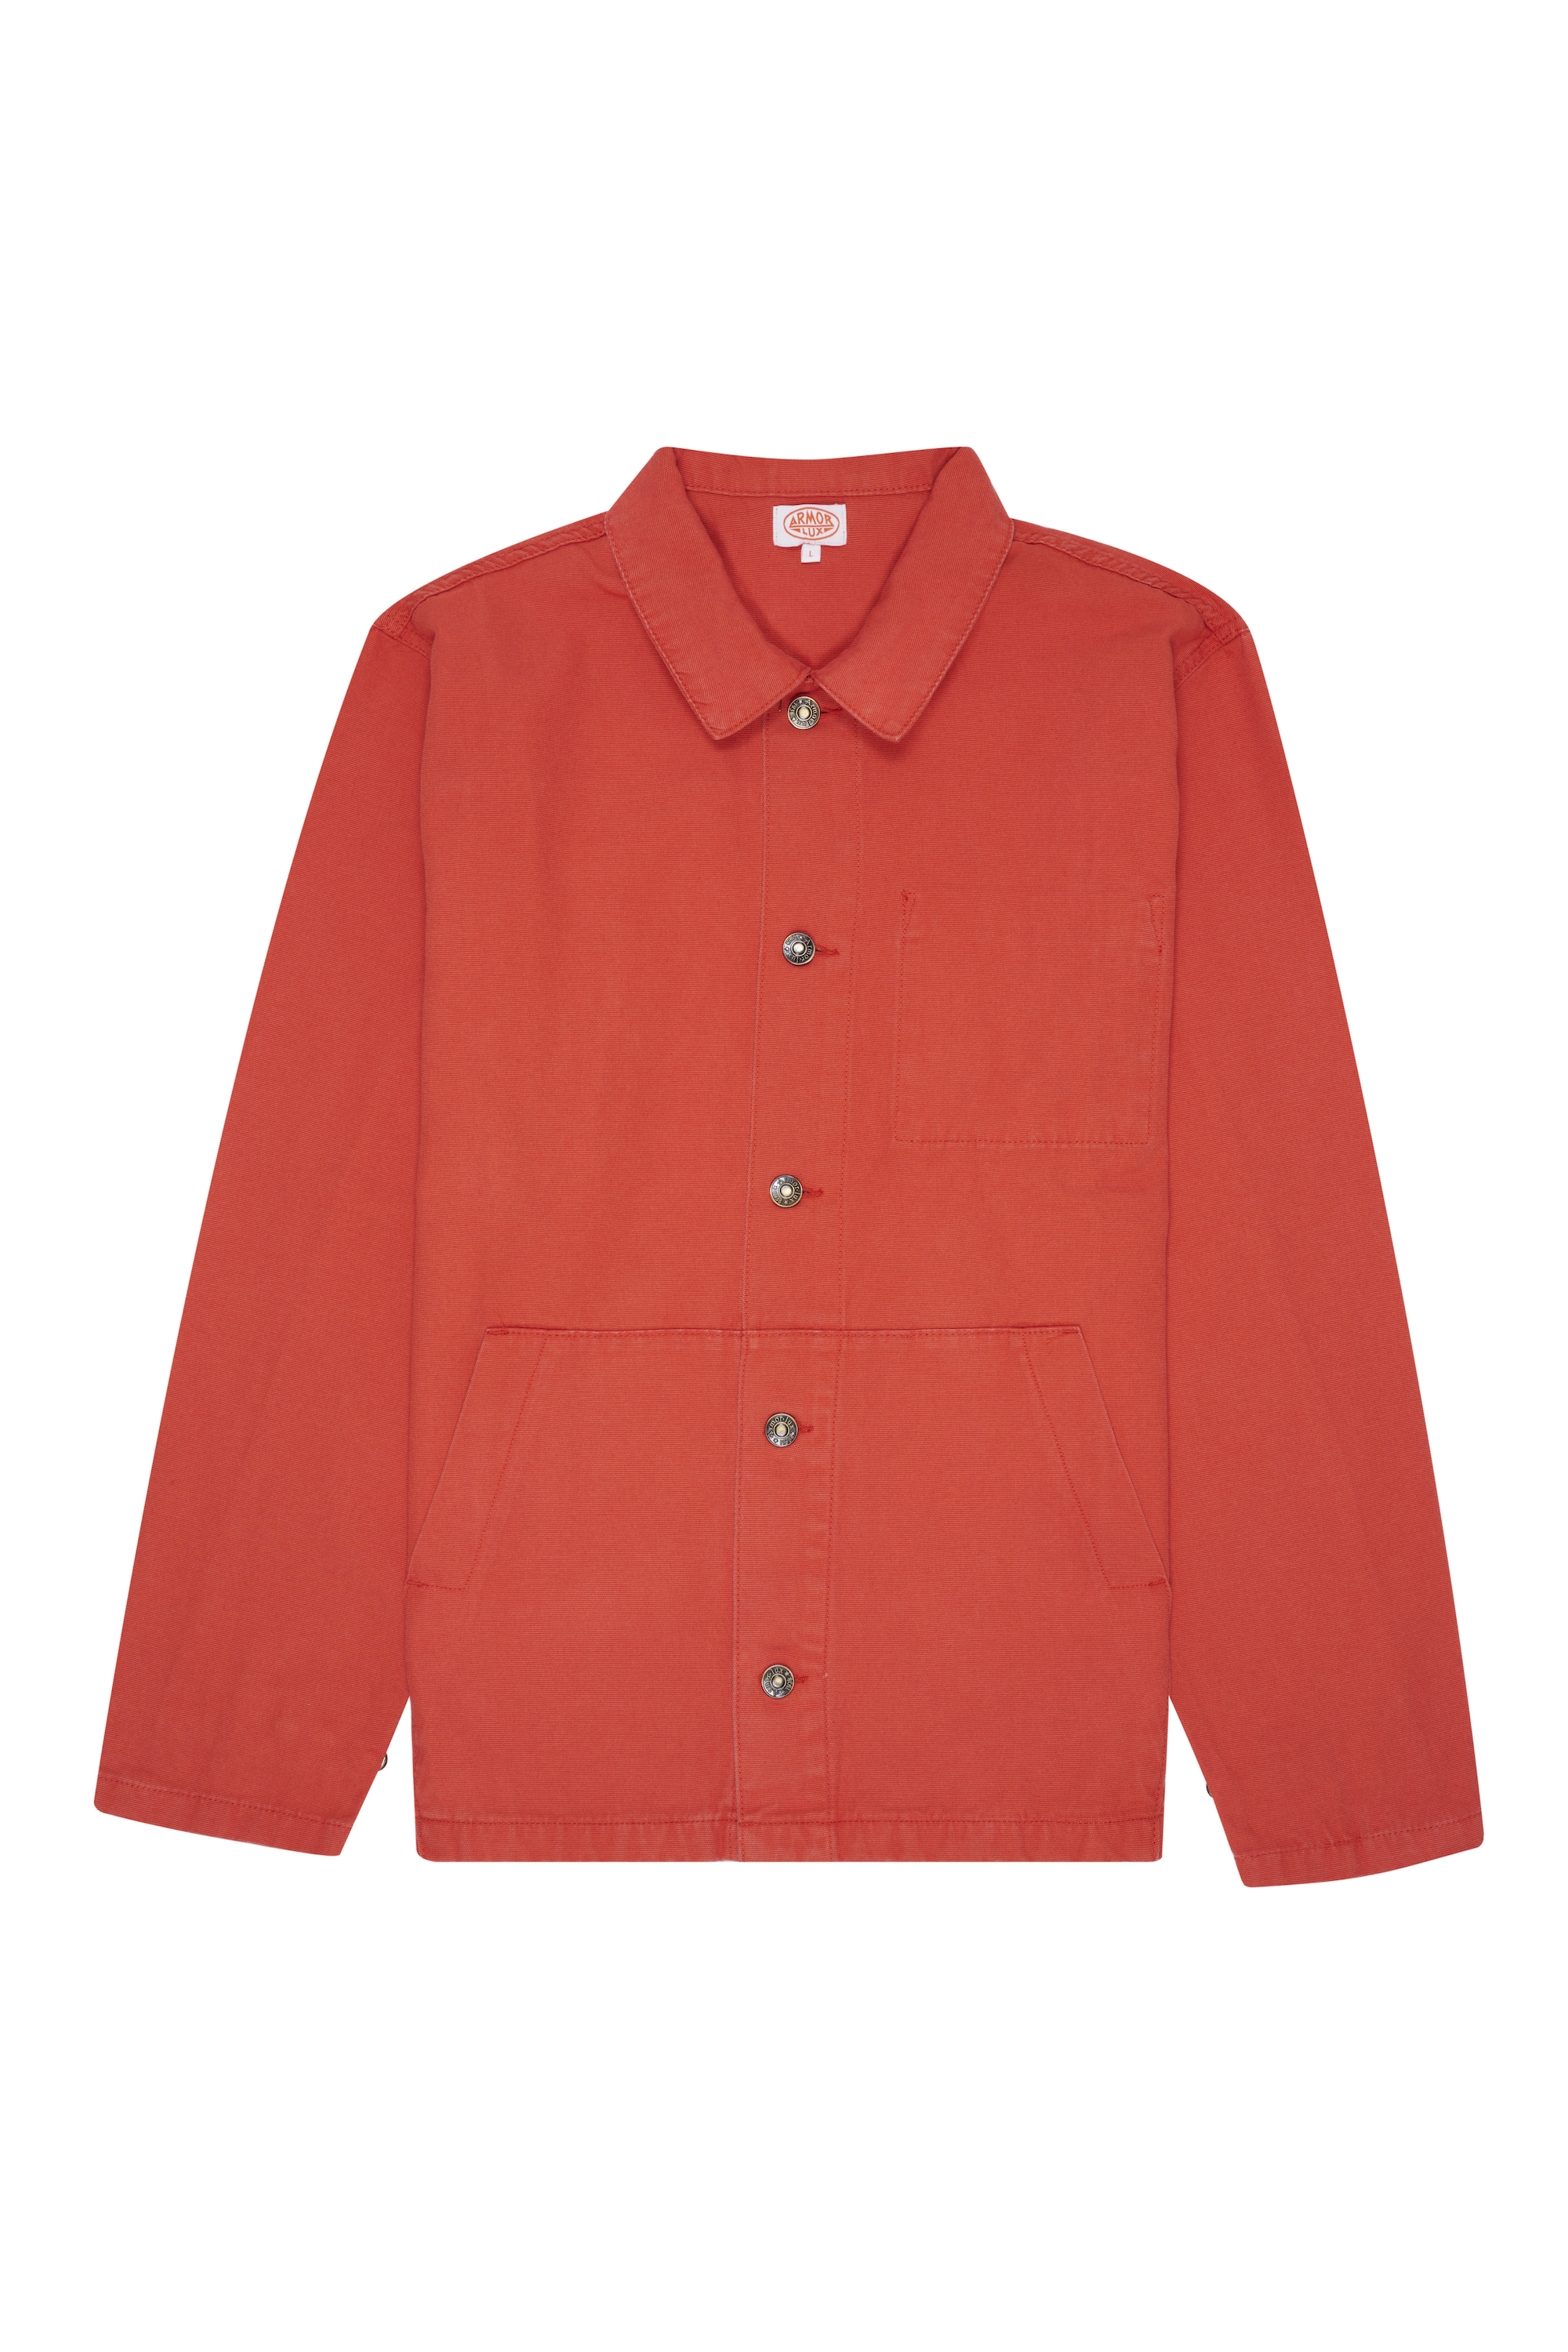 Armor Luxe red jacket